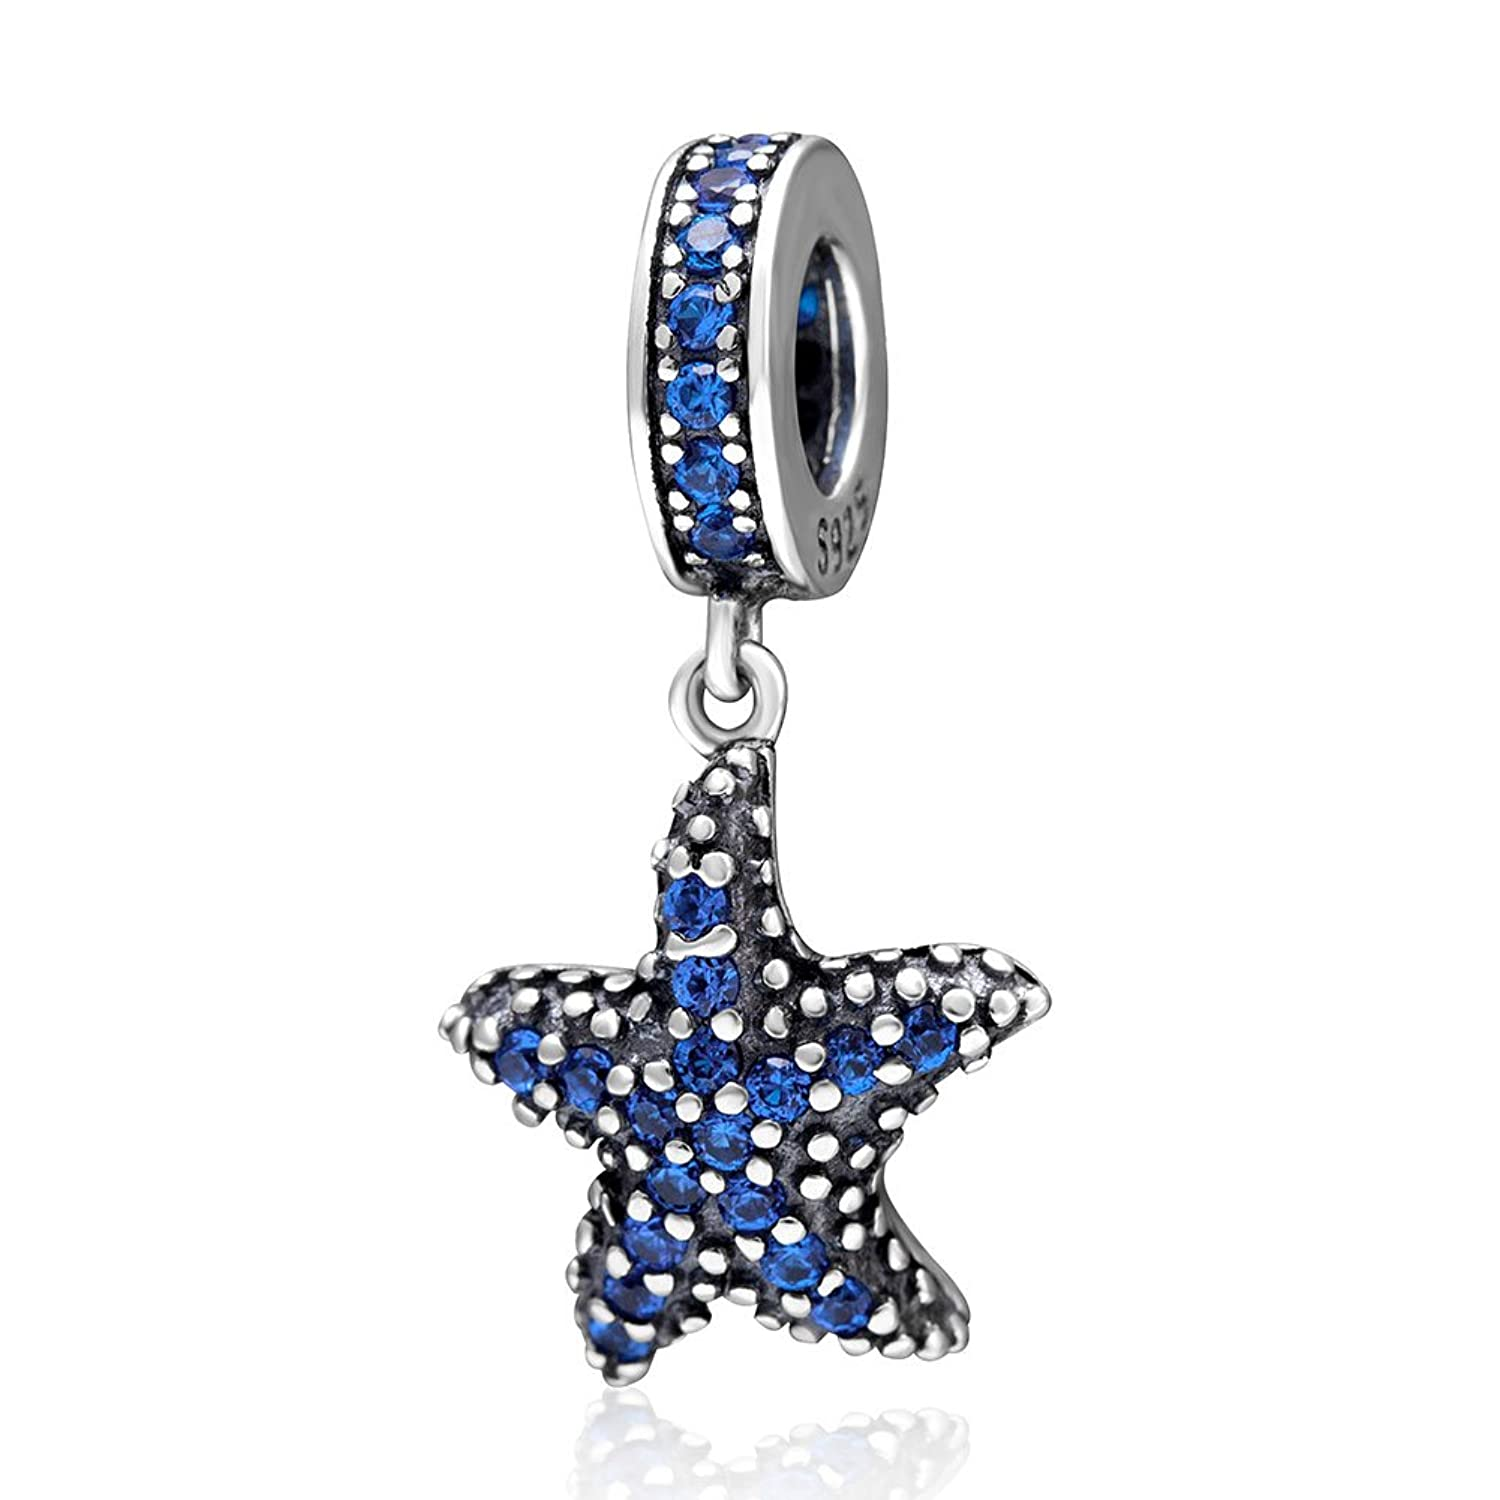 Estrella de mar tropical colgantes maciza  plata de ley Dangle Charm con